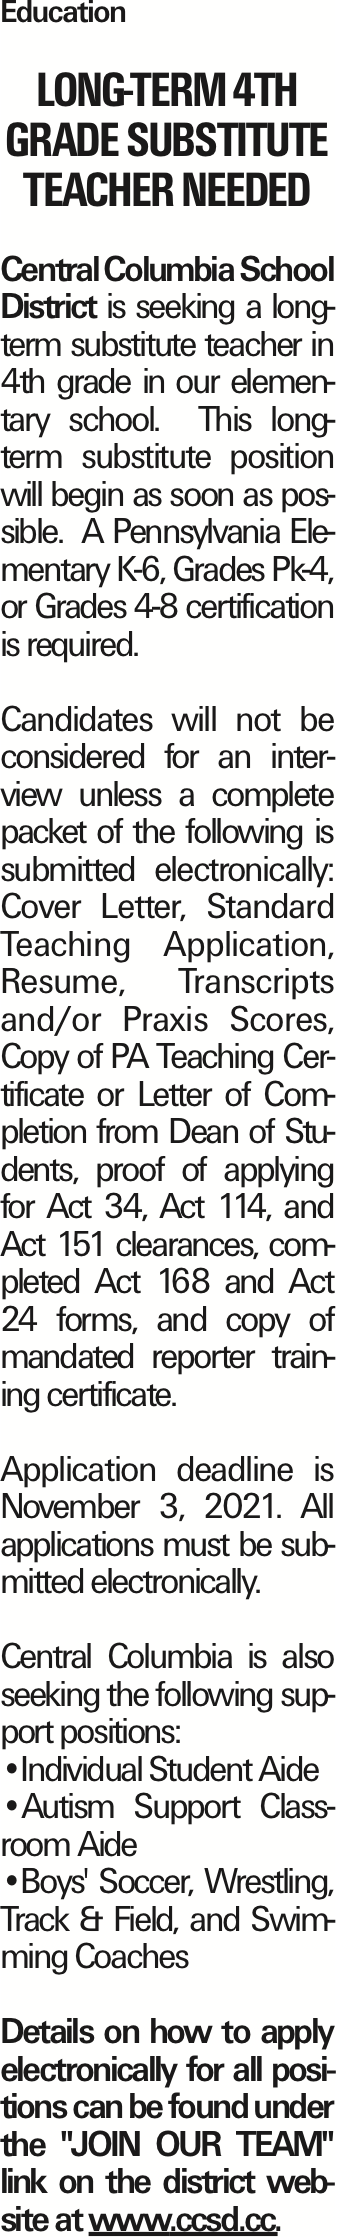 """Education Long-Term 4th Grade Substitute Teacher Needed Central Columbia School District is seeking a long-term substitute teacher in 4th grade in our elementary school. This long-term substitute position will begin as soon as possible. A Pennsylvania Elementary K-6, Grades Pk-4, or Grades 4-8 certification is required. Candidates will not be considered for an interview unless a complete packet of the following is submitted electronically: Cover Letter, Standard Teaching Application, Resume, Transcripts and/or Praxis Scores, Copy of PA Teaching Certificate or Letter of Completion from Dean of Students, proof of applying for Act 34, Act 114, and Act 151 clearances, completed Act 168 and Act 24 forms, and copy of mandated reporter training certificate. Application deadline is November 3, 2021. All applications must be submitted electronically. Central Columbia is also seeking the following support positions: --Individual Student Aide --Autism Support Classroom Aide --Boys' Soccer, Wrestling, Track & Field, and Swimming Coaches Details on how to apply electronically for all positions can be found under the """"JOIN OUR TEAM"""" link on the district website at www.ccsd.cc. As published in the Press Enterprise."""